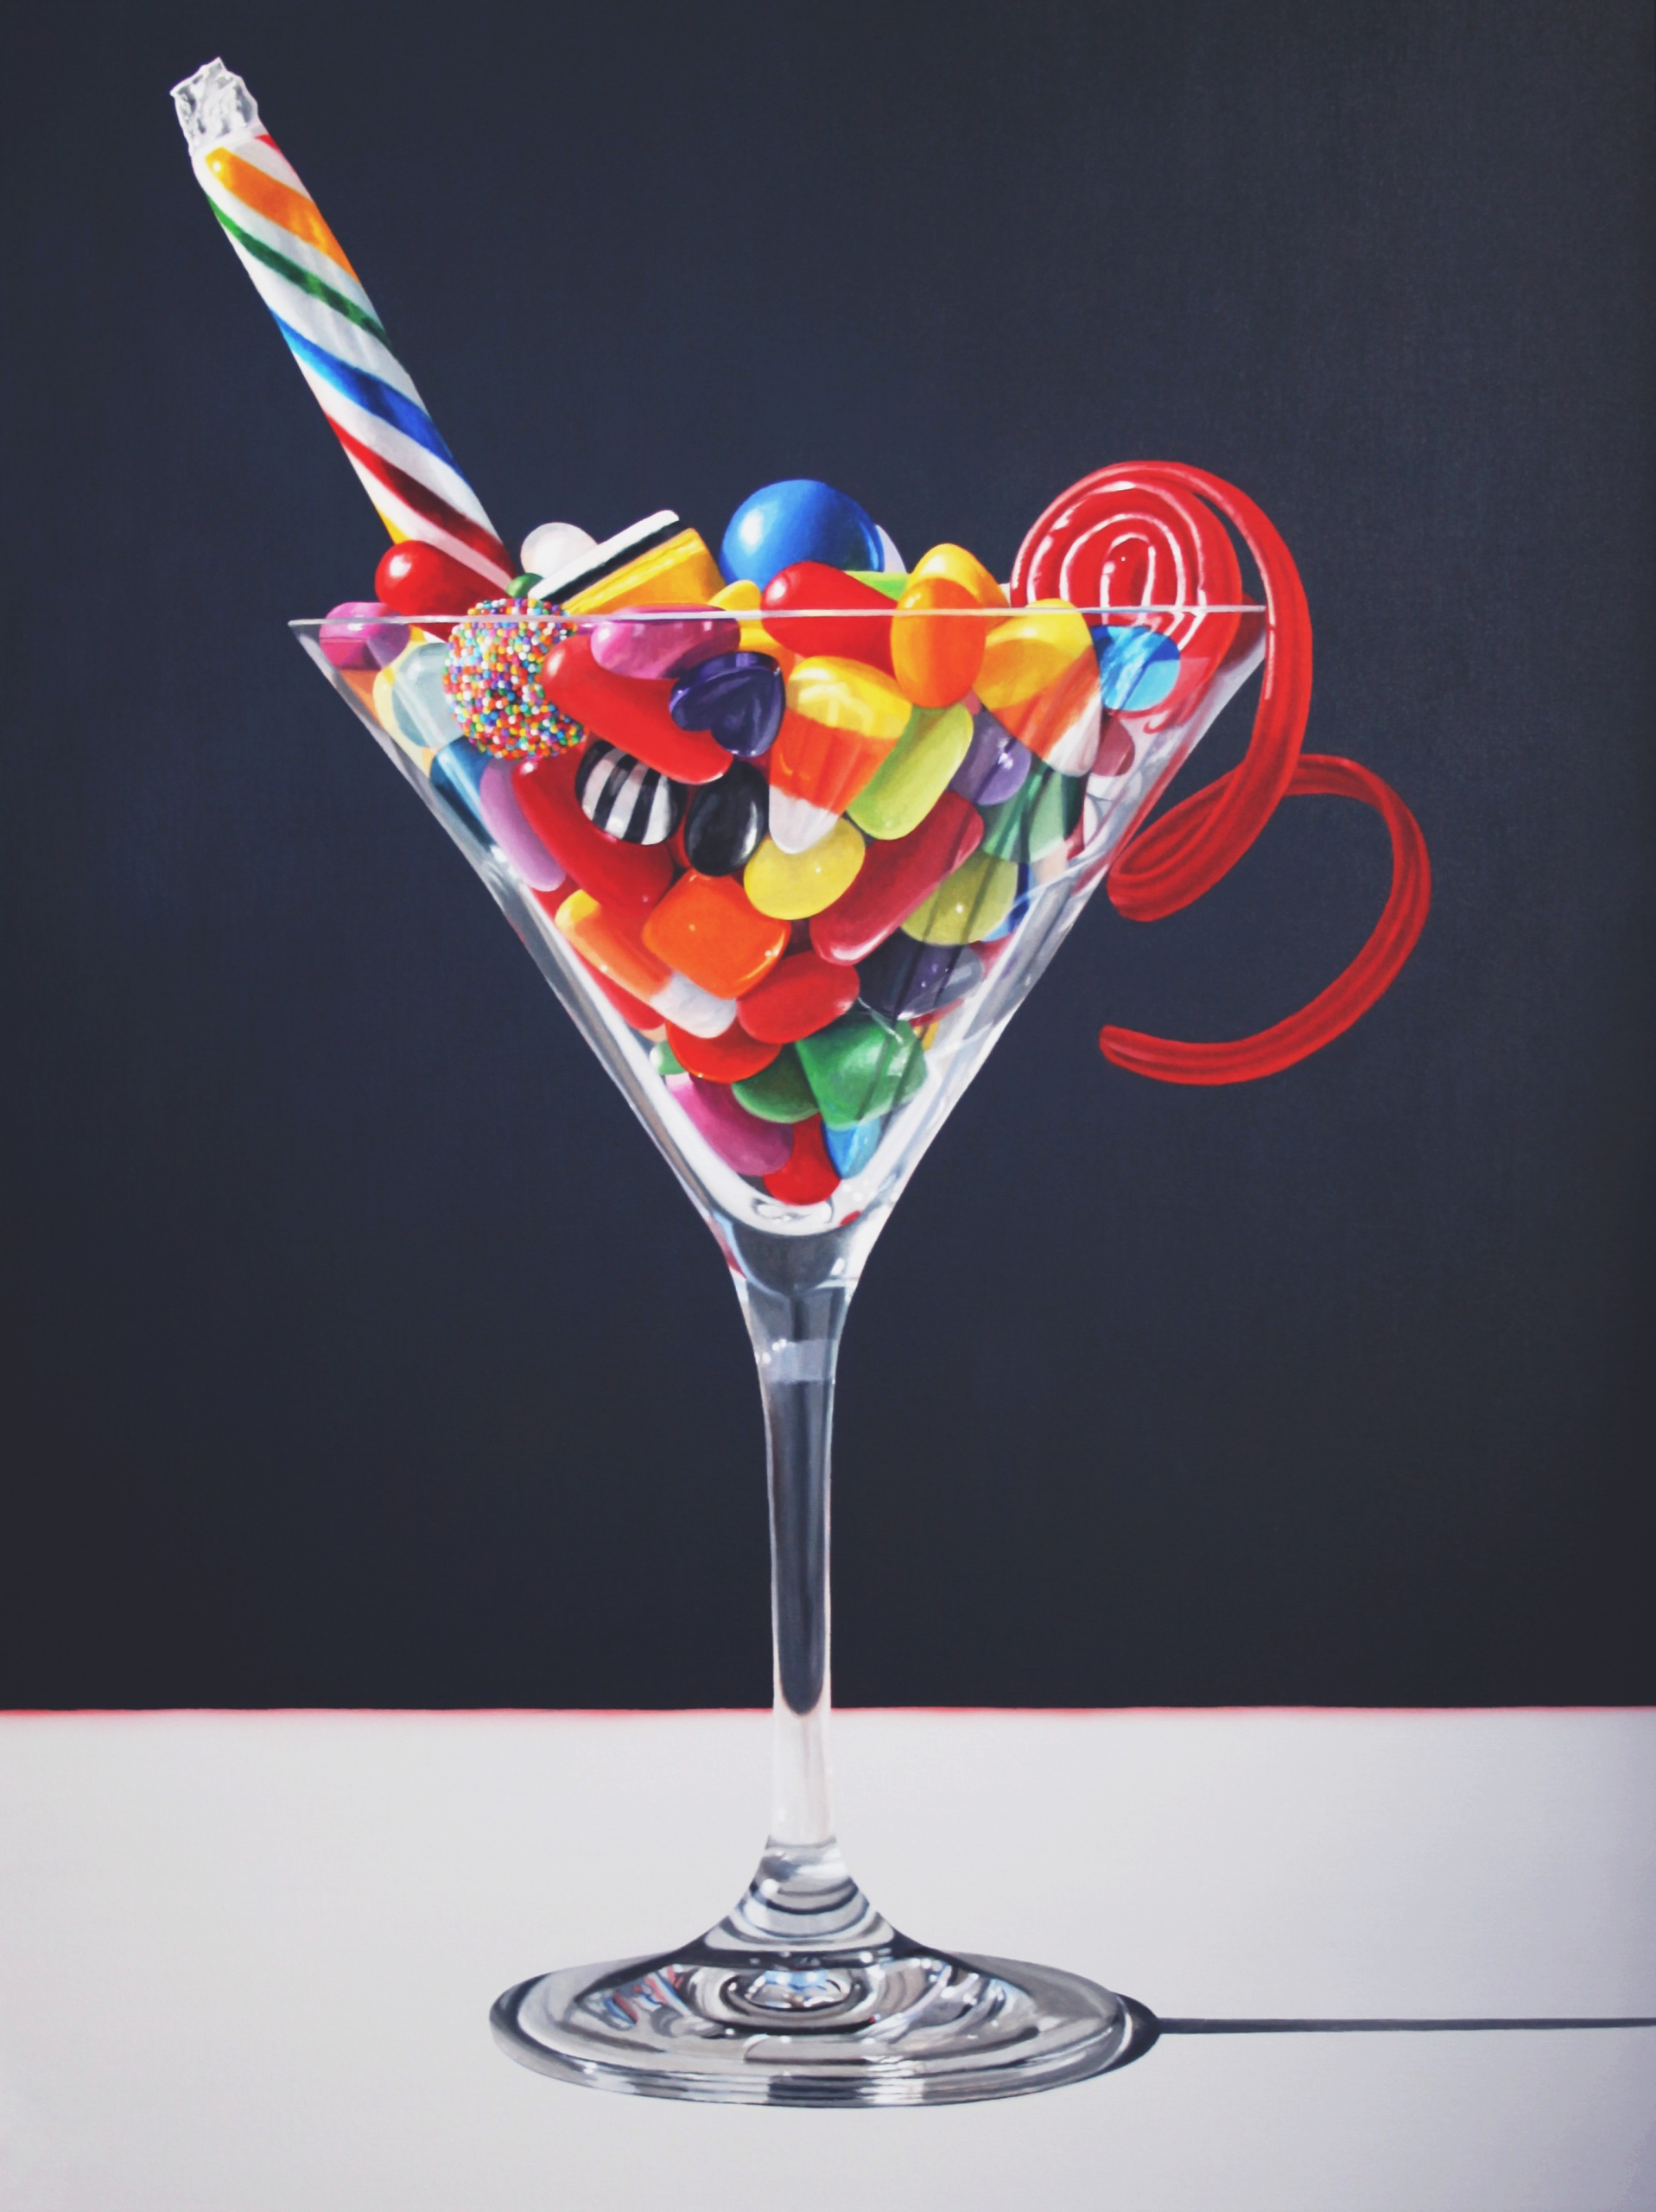 Sweetini,  2020, Oil on canvas, 48 x 36 inches